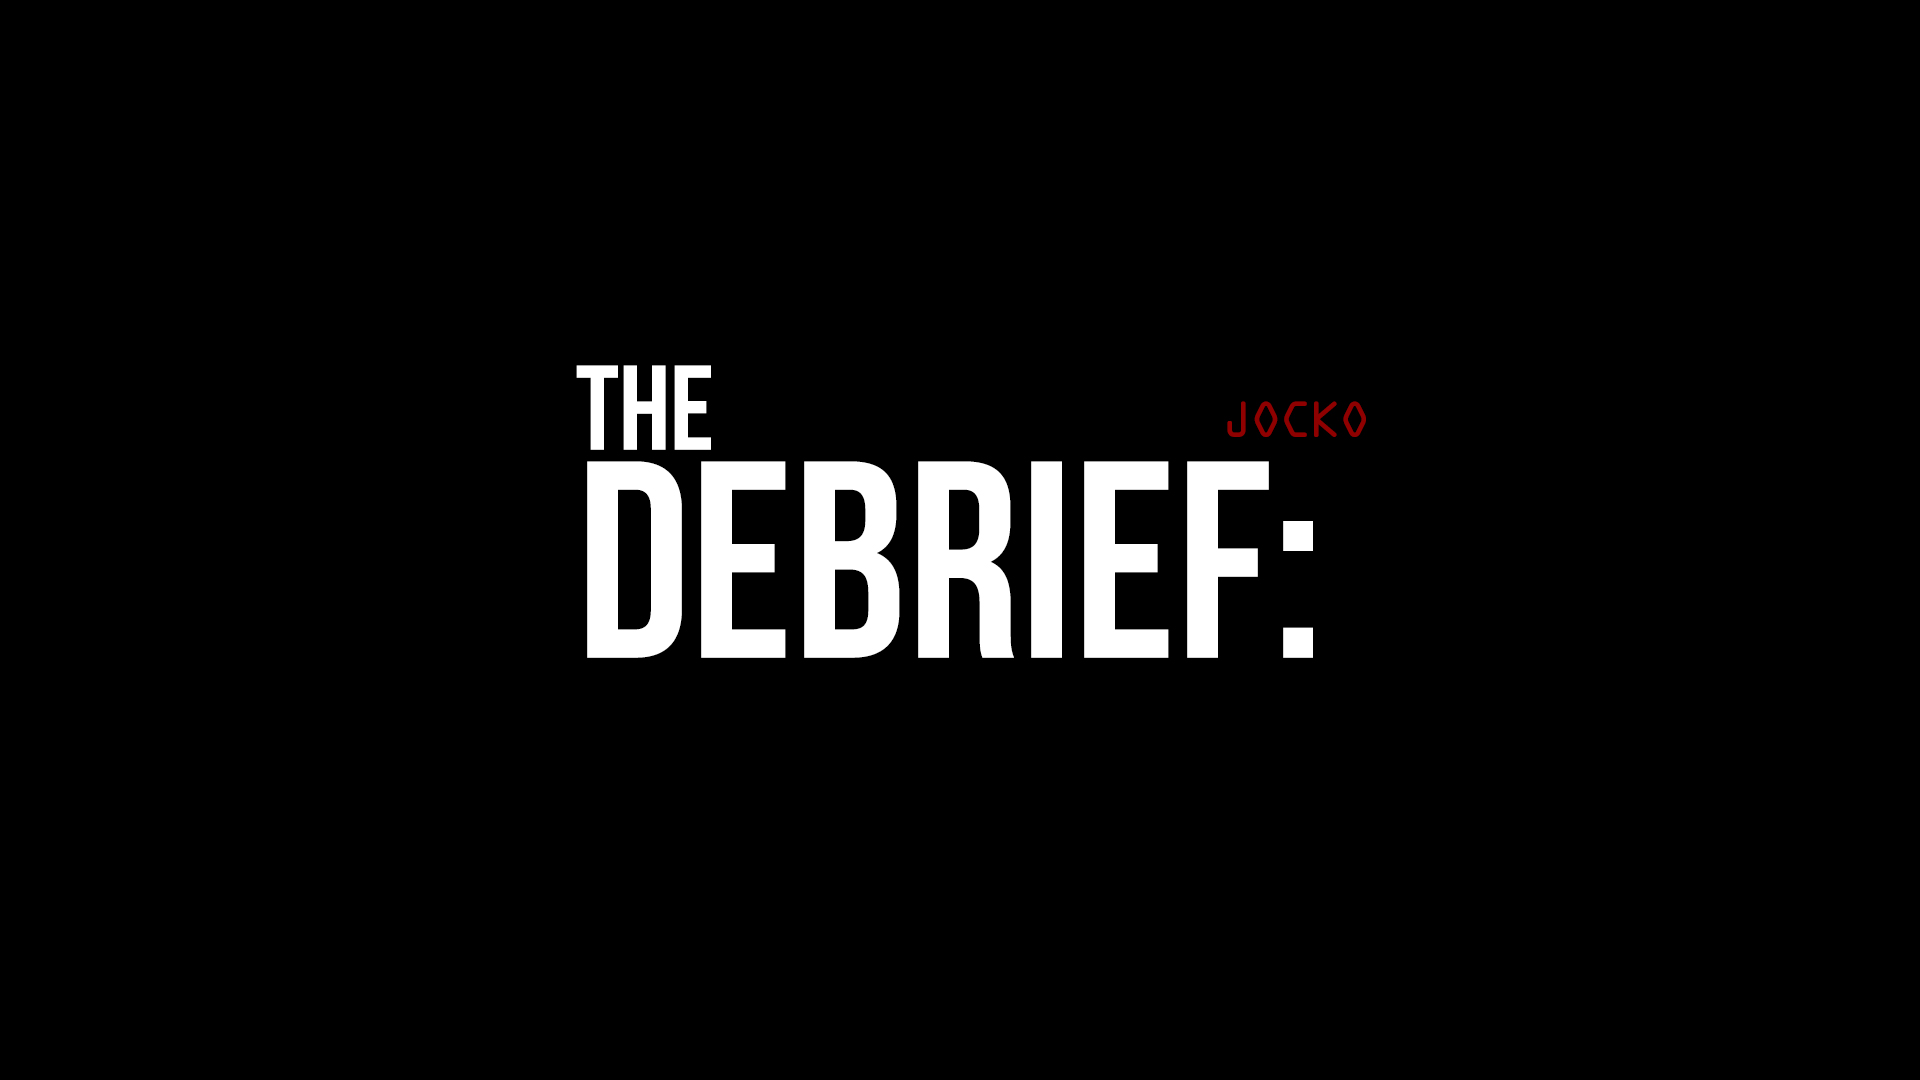 The Debrief w/ Jocko and Dave Berke #7:  How to Step Up and Lead When You're a New Team Member, Without Stepping On Toes